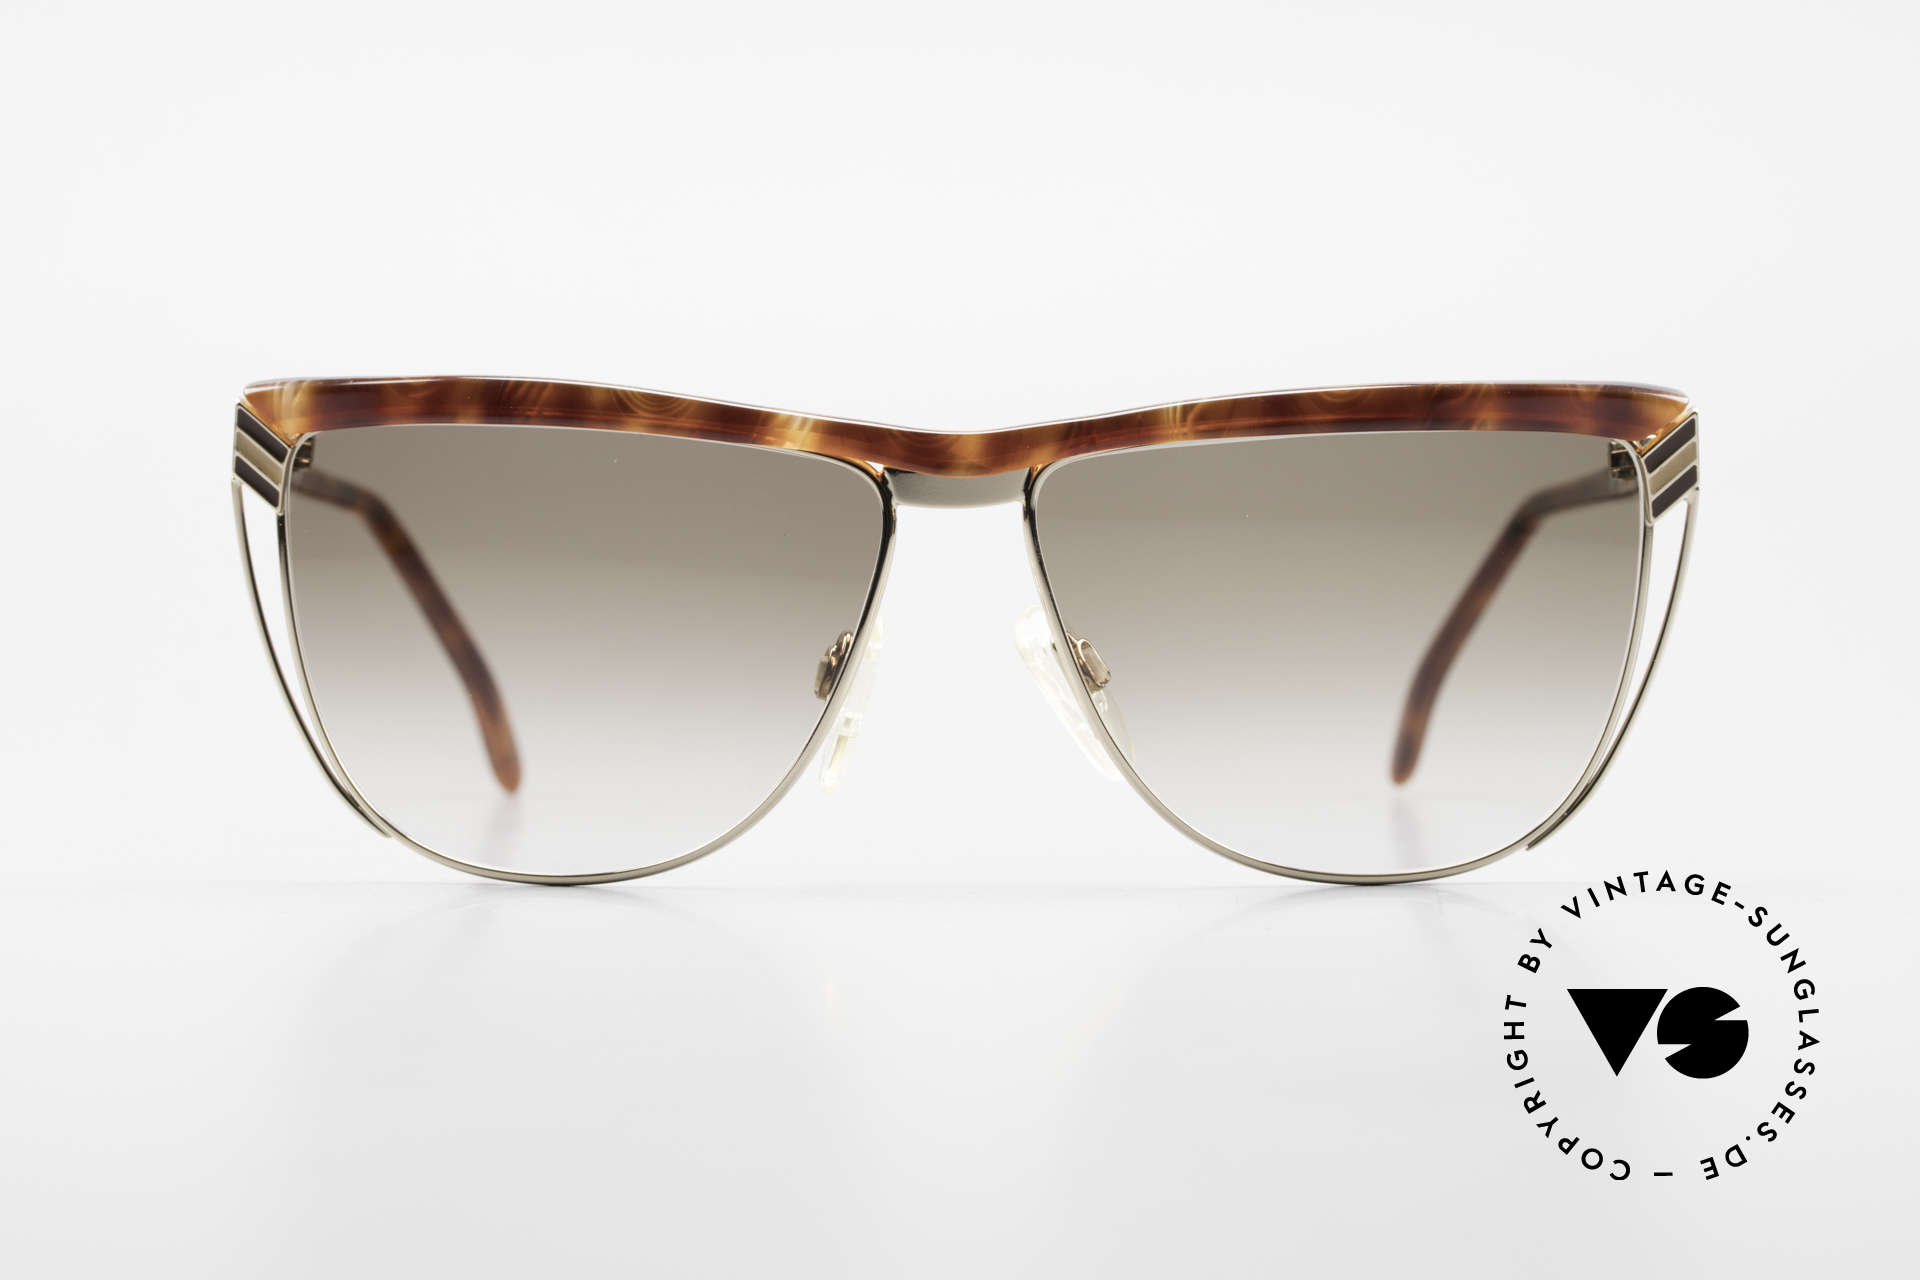 Gucci 2300 Ladies Designer Sunglasses 80s, with the famous Gucci symbol (2 connected stirrups), Made for Women